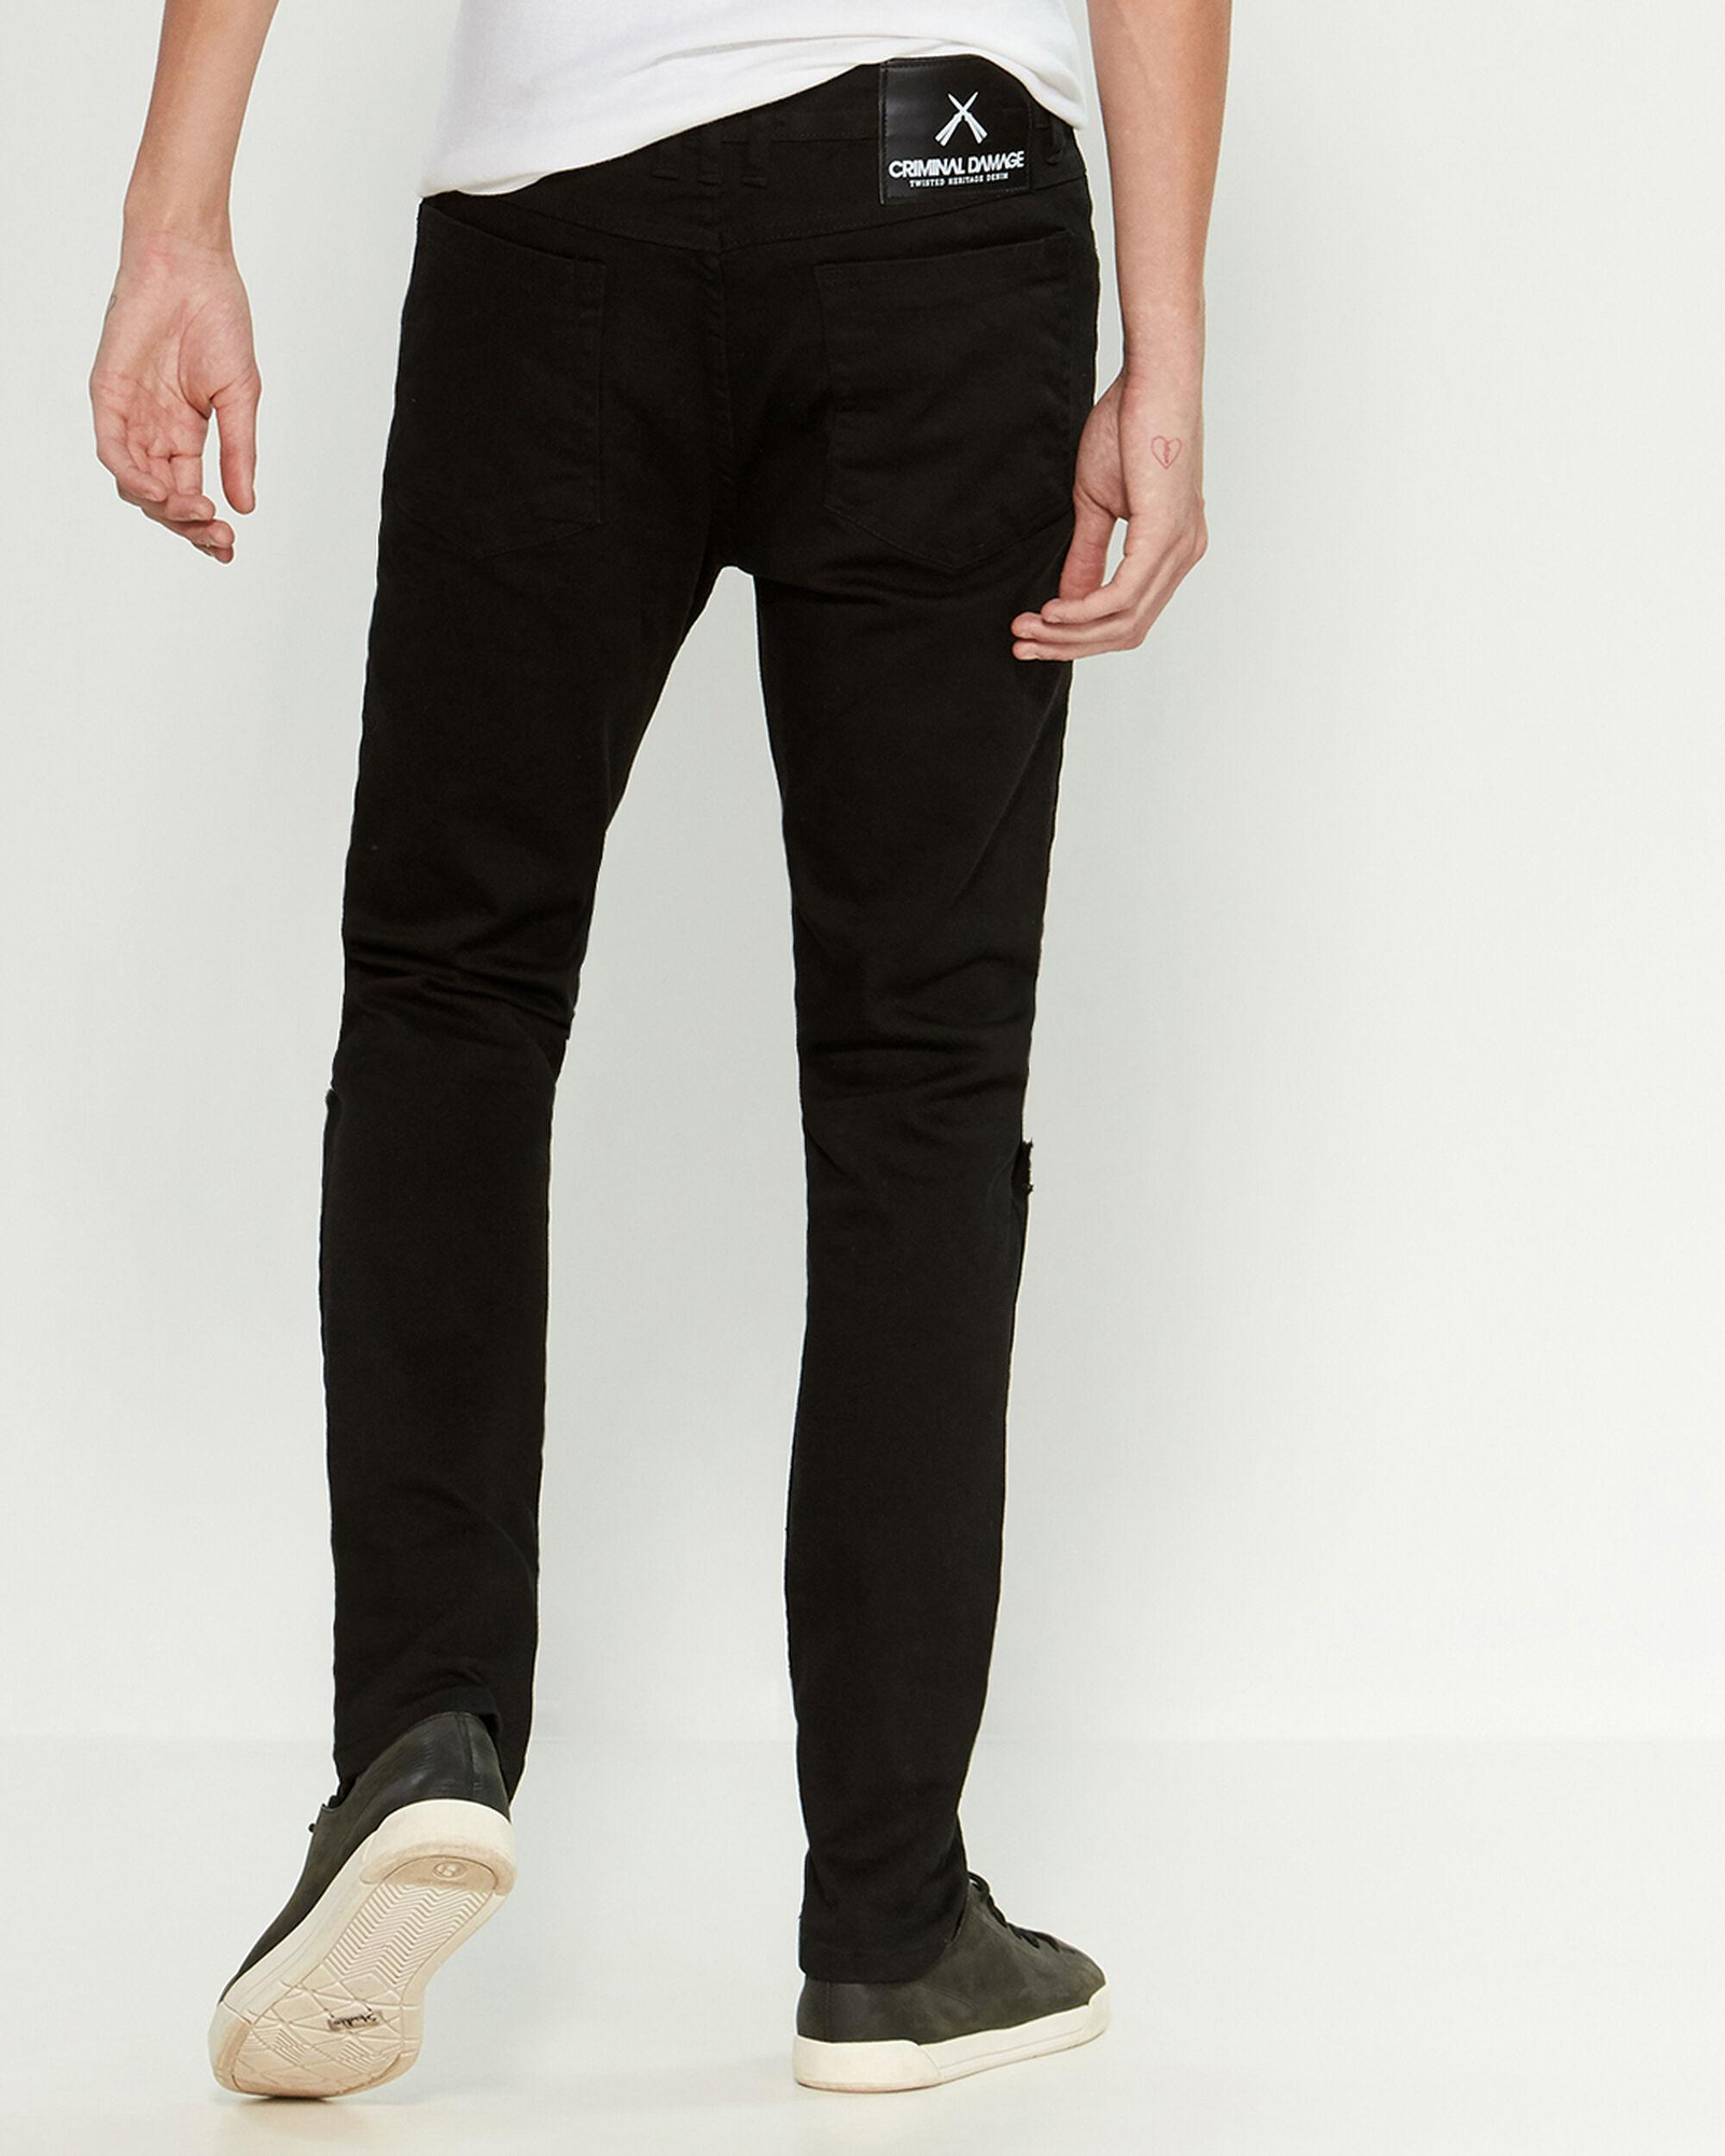 fc32f93f1cc Criminal Damage Black Sos Ripped Skinny Jeans in Black for Men - Lyst